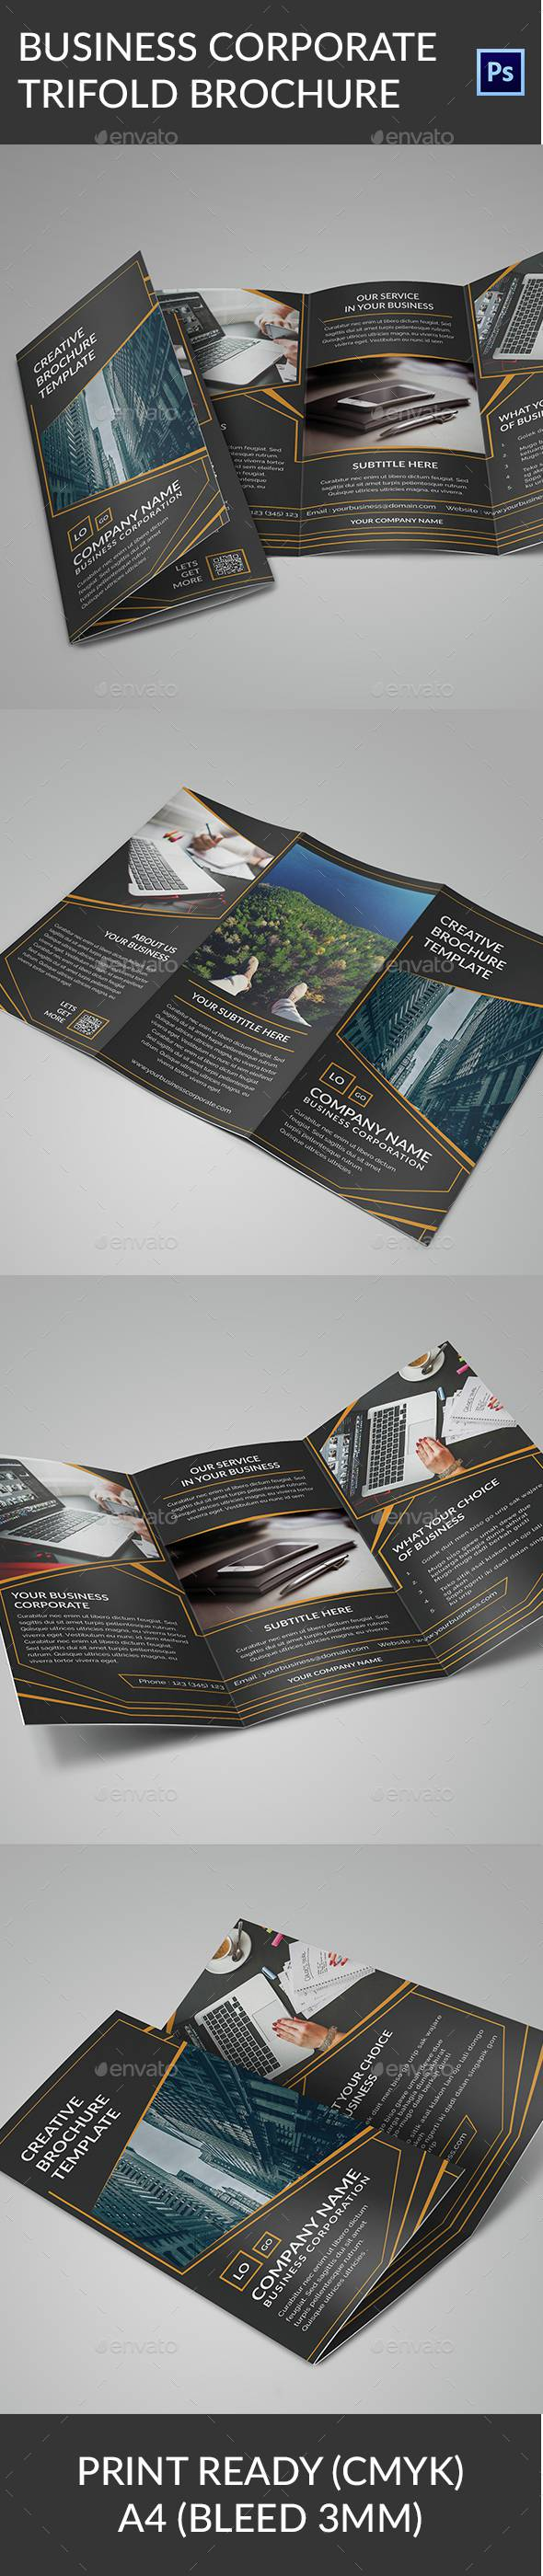 Creative Design Trifold Brochure